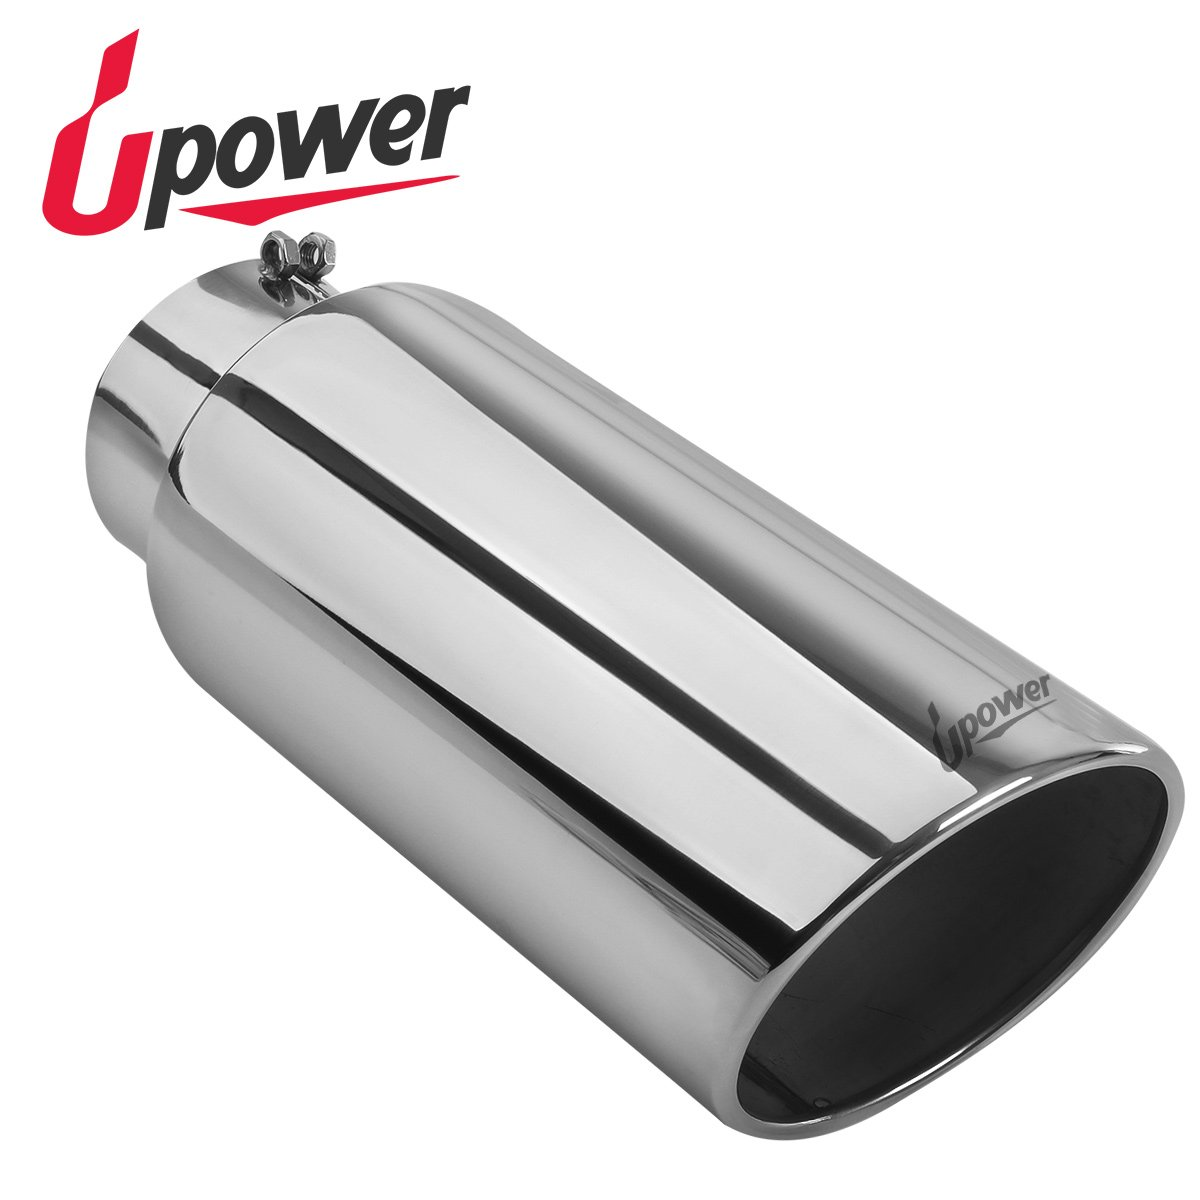 Upower Diesel Exhaust Tip Tailpipe 5 Inch Inlet 7'' Outlet 18'' Long Universal Stainless Steel Bolt On for Trucks Car